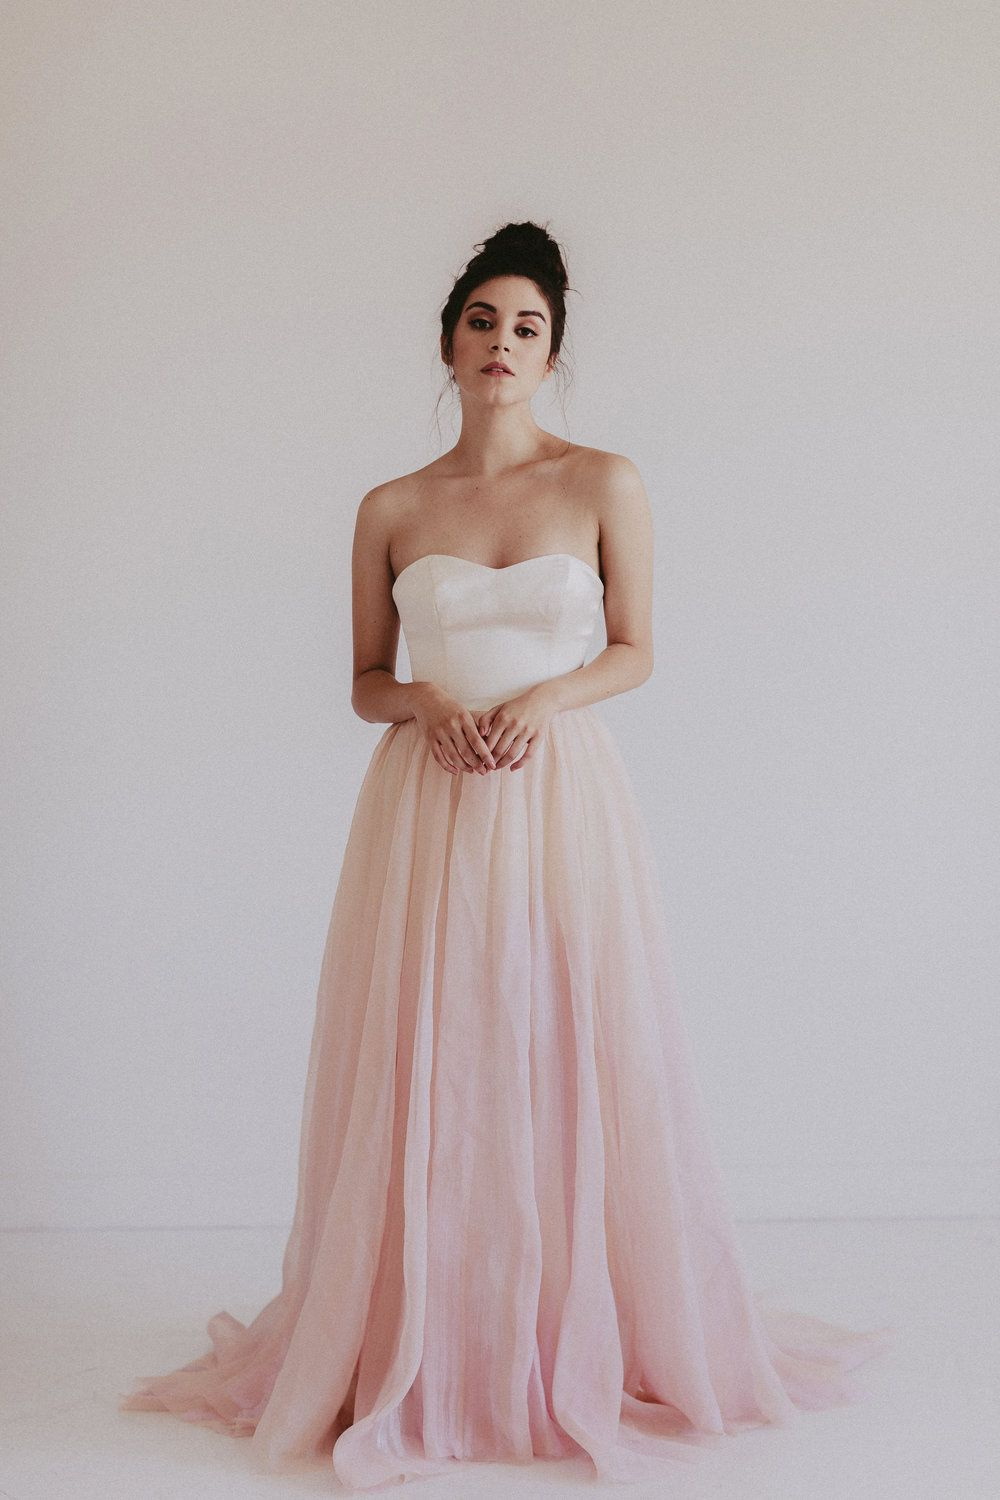 1423b64781b5 Chantel Lauren DOLLY|| Hand painted color wedding gown || Blush wedding  dress || See more at emmaandgracebridal.com